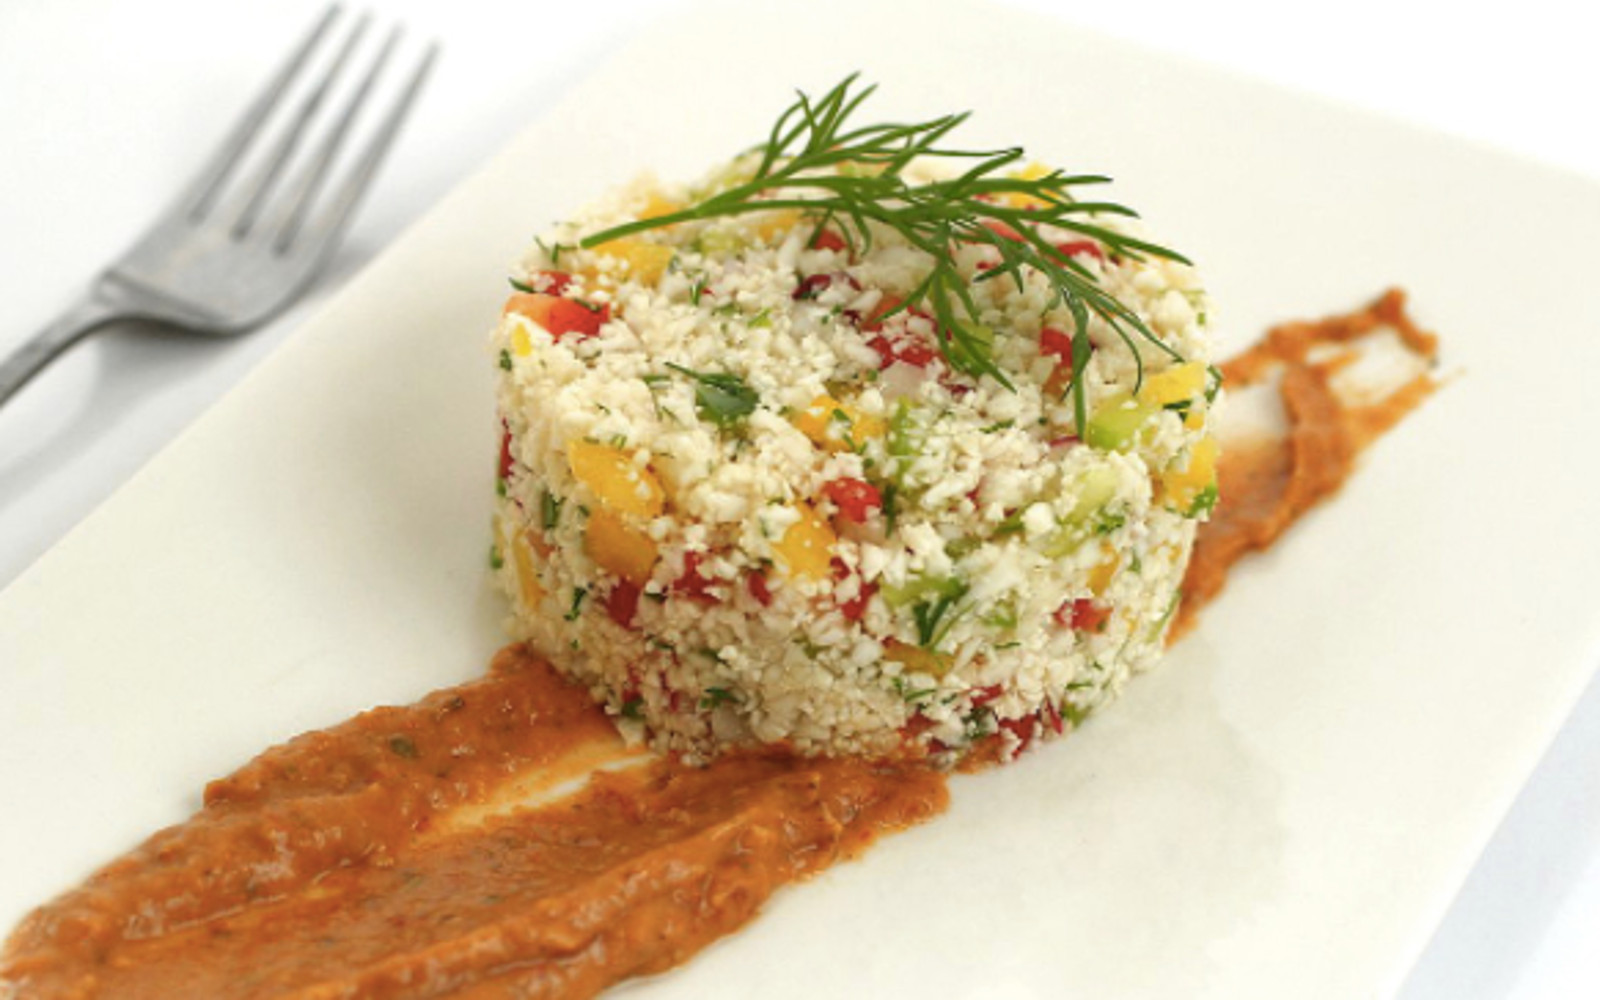 Cauliflower Couscous With Sun-Dried Tomato Sauce